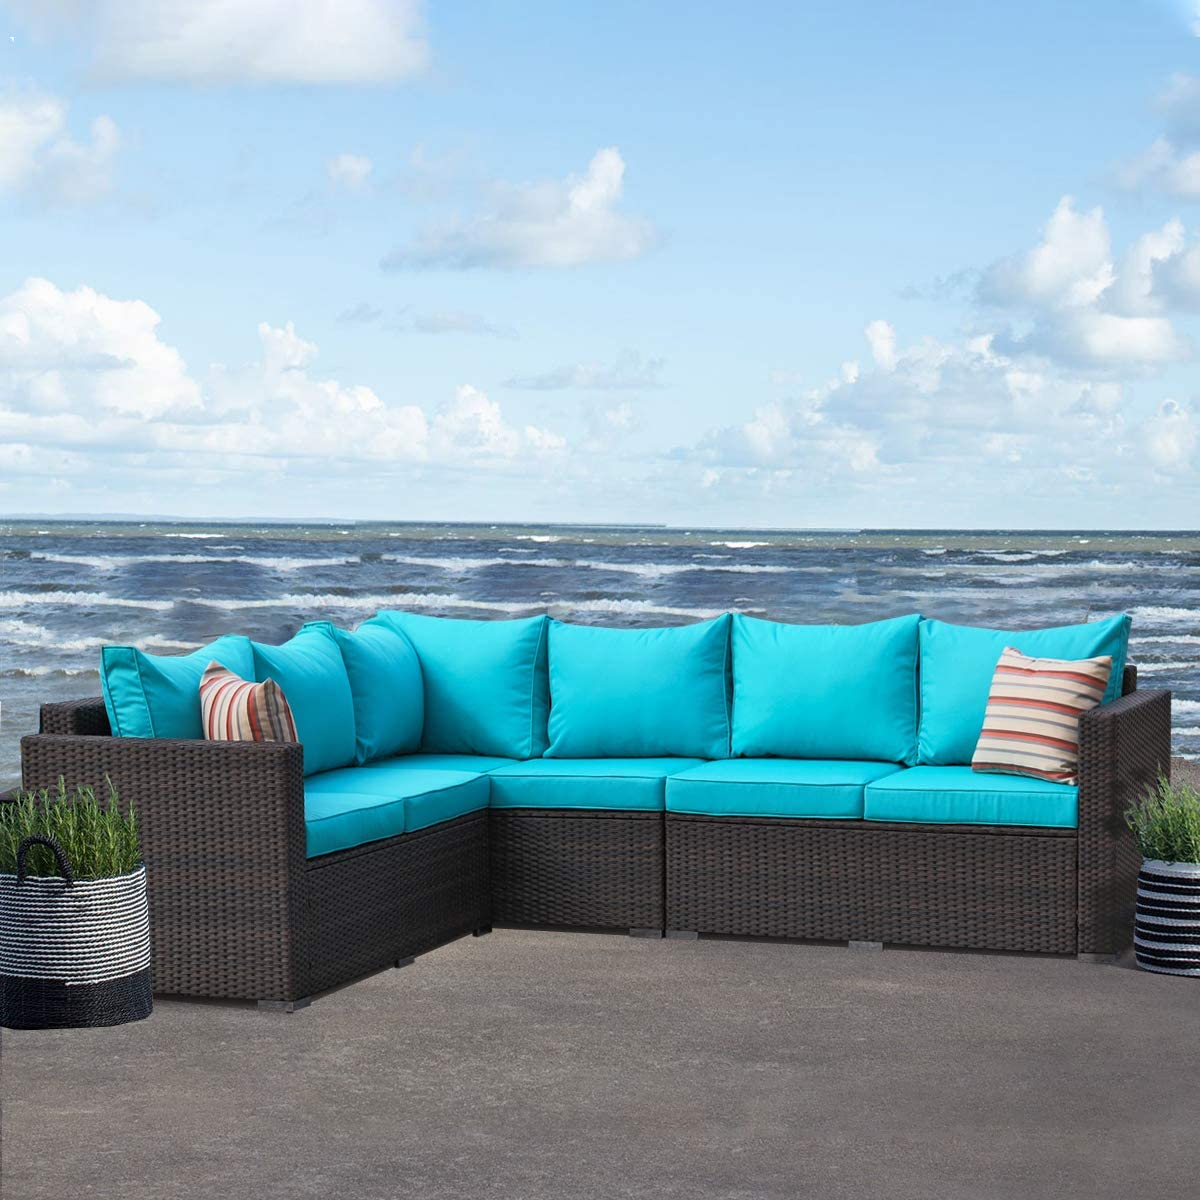 Amazon Com Patio Furniture Garden 5 Pcs Sectional Sofa Brown Wicker Conversation Set Outdoor Indoor Use Couch Set Turquoise Cushion Garden Outdoor